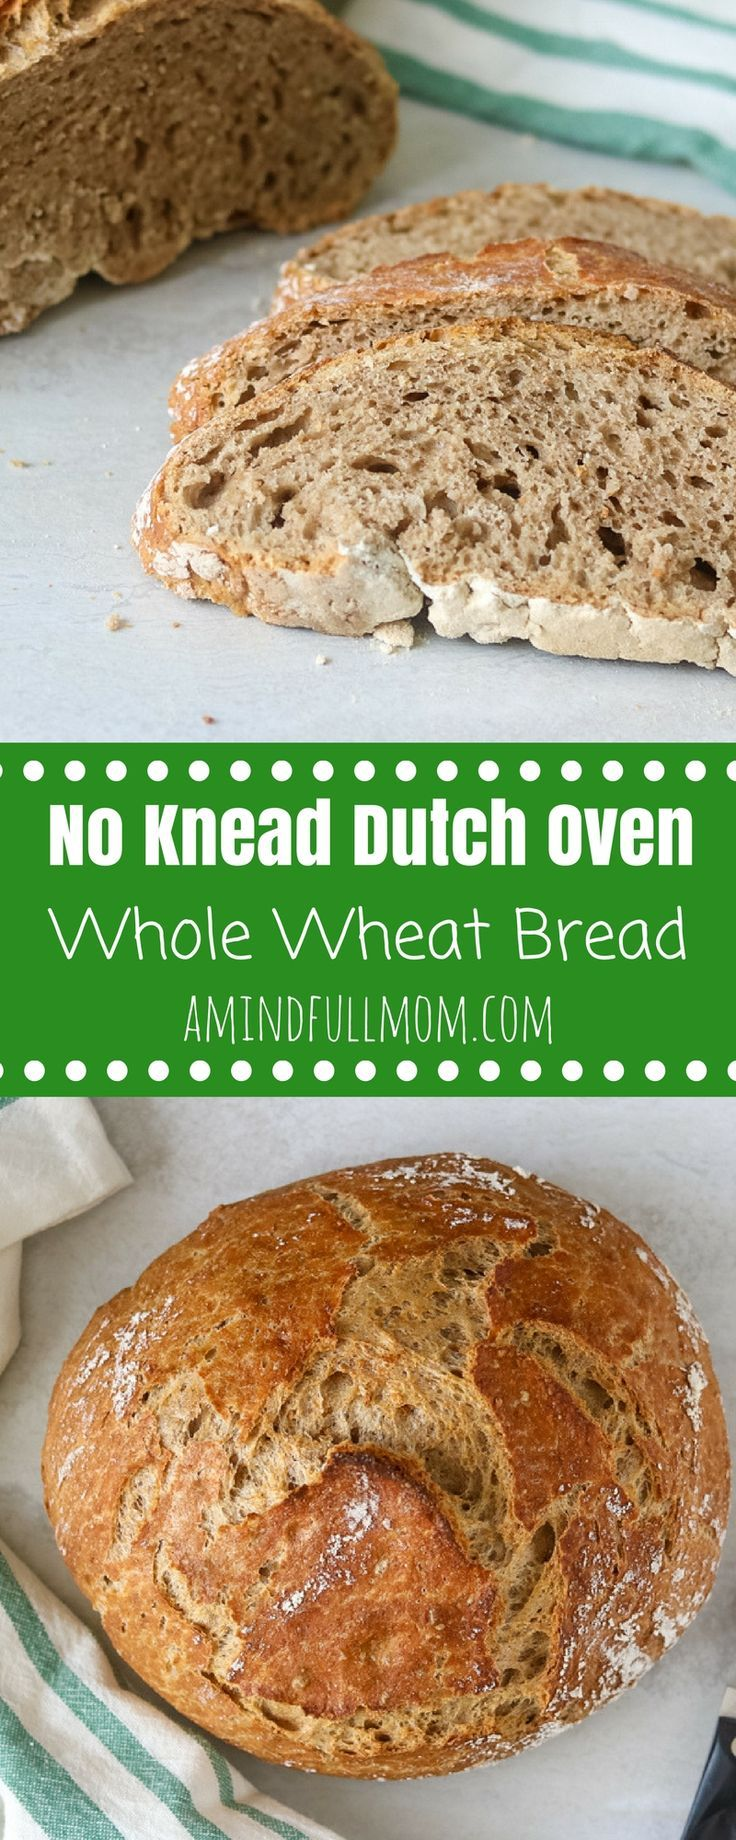 No-Knead Whole Wheat Dutch Oven Bread: Simple technique that creates a hearty, rustic bread which bakes in a dutch oven. Perfect for serving with soup or toasting up for a hearty breakfast. #bread #wholewheat #healthy via @amindfullmom